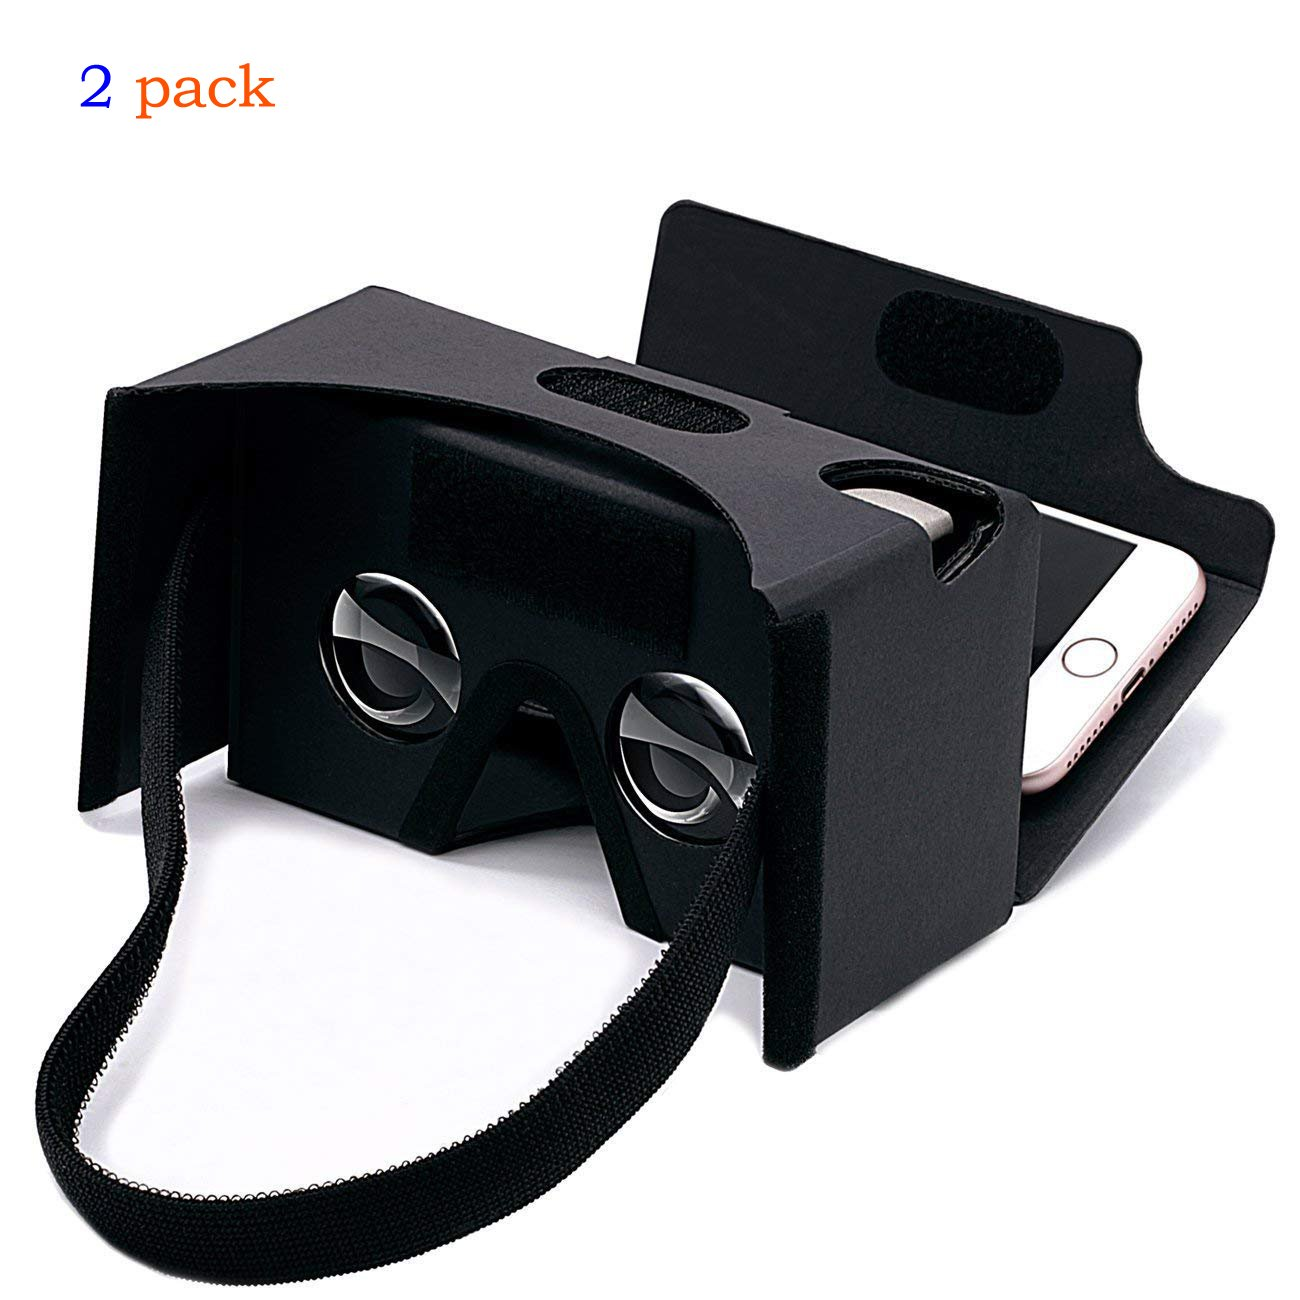 2Pack Google Cardboard 3D Virtual Reality Headset Glasses,DIY VR Cardboard Compatible with 3-6inch Screen Android and iPhone Smartphone Black